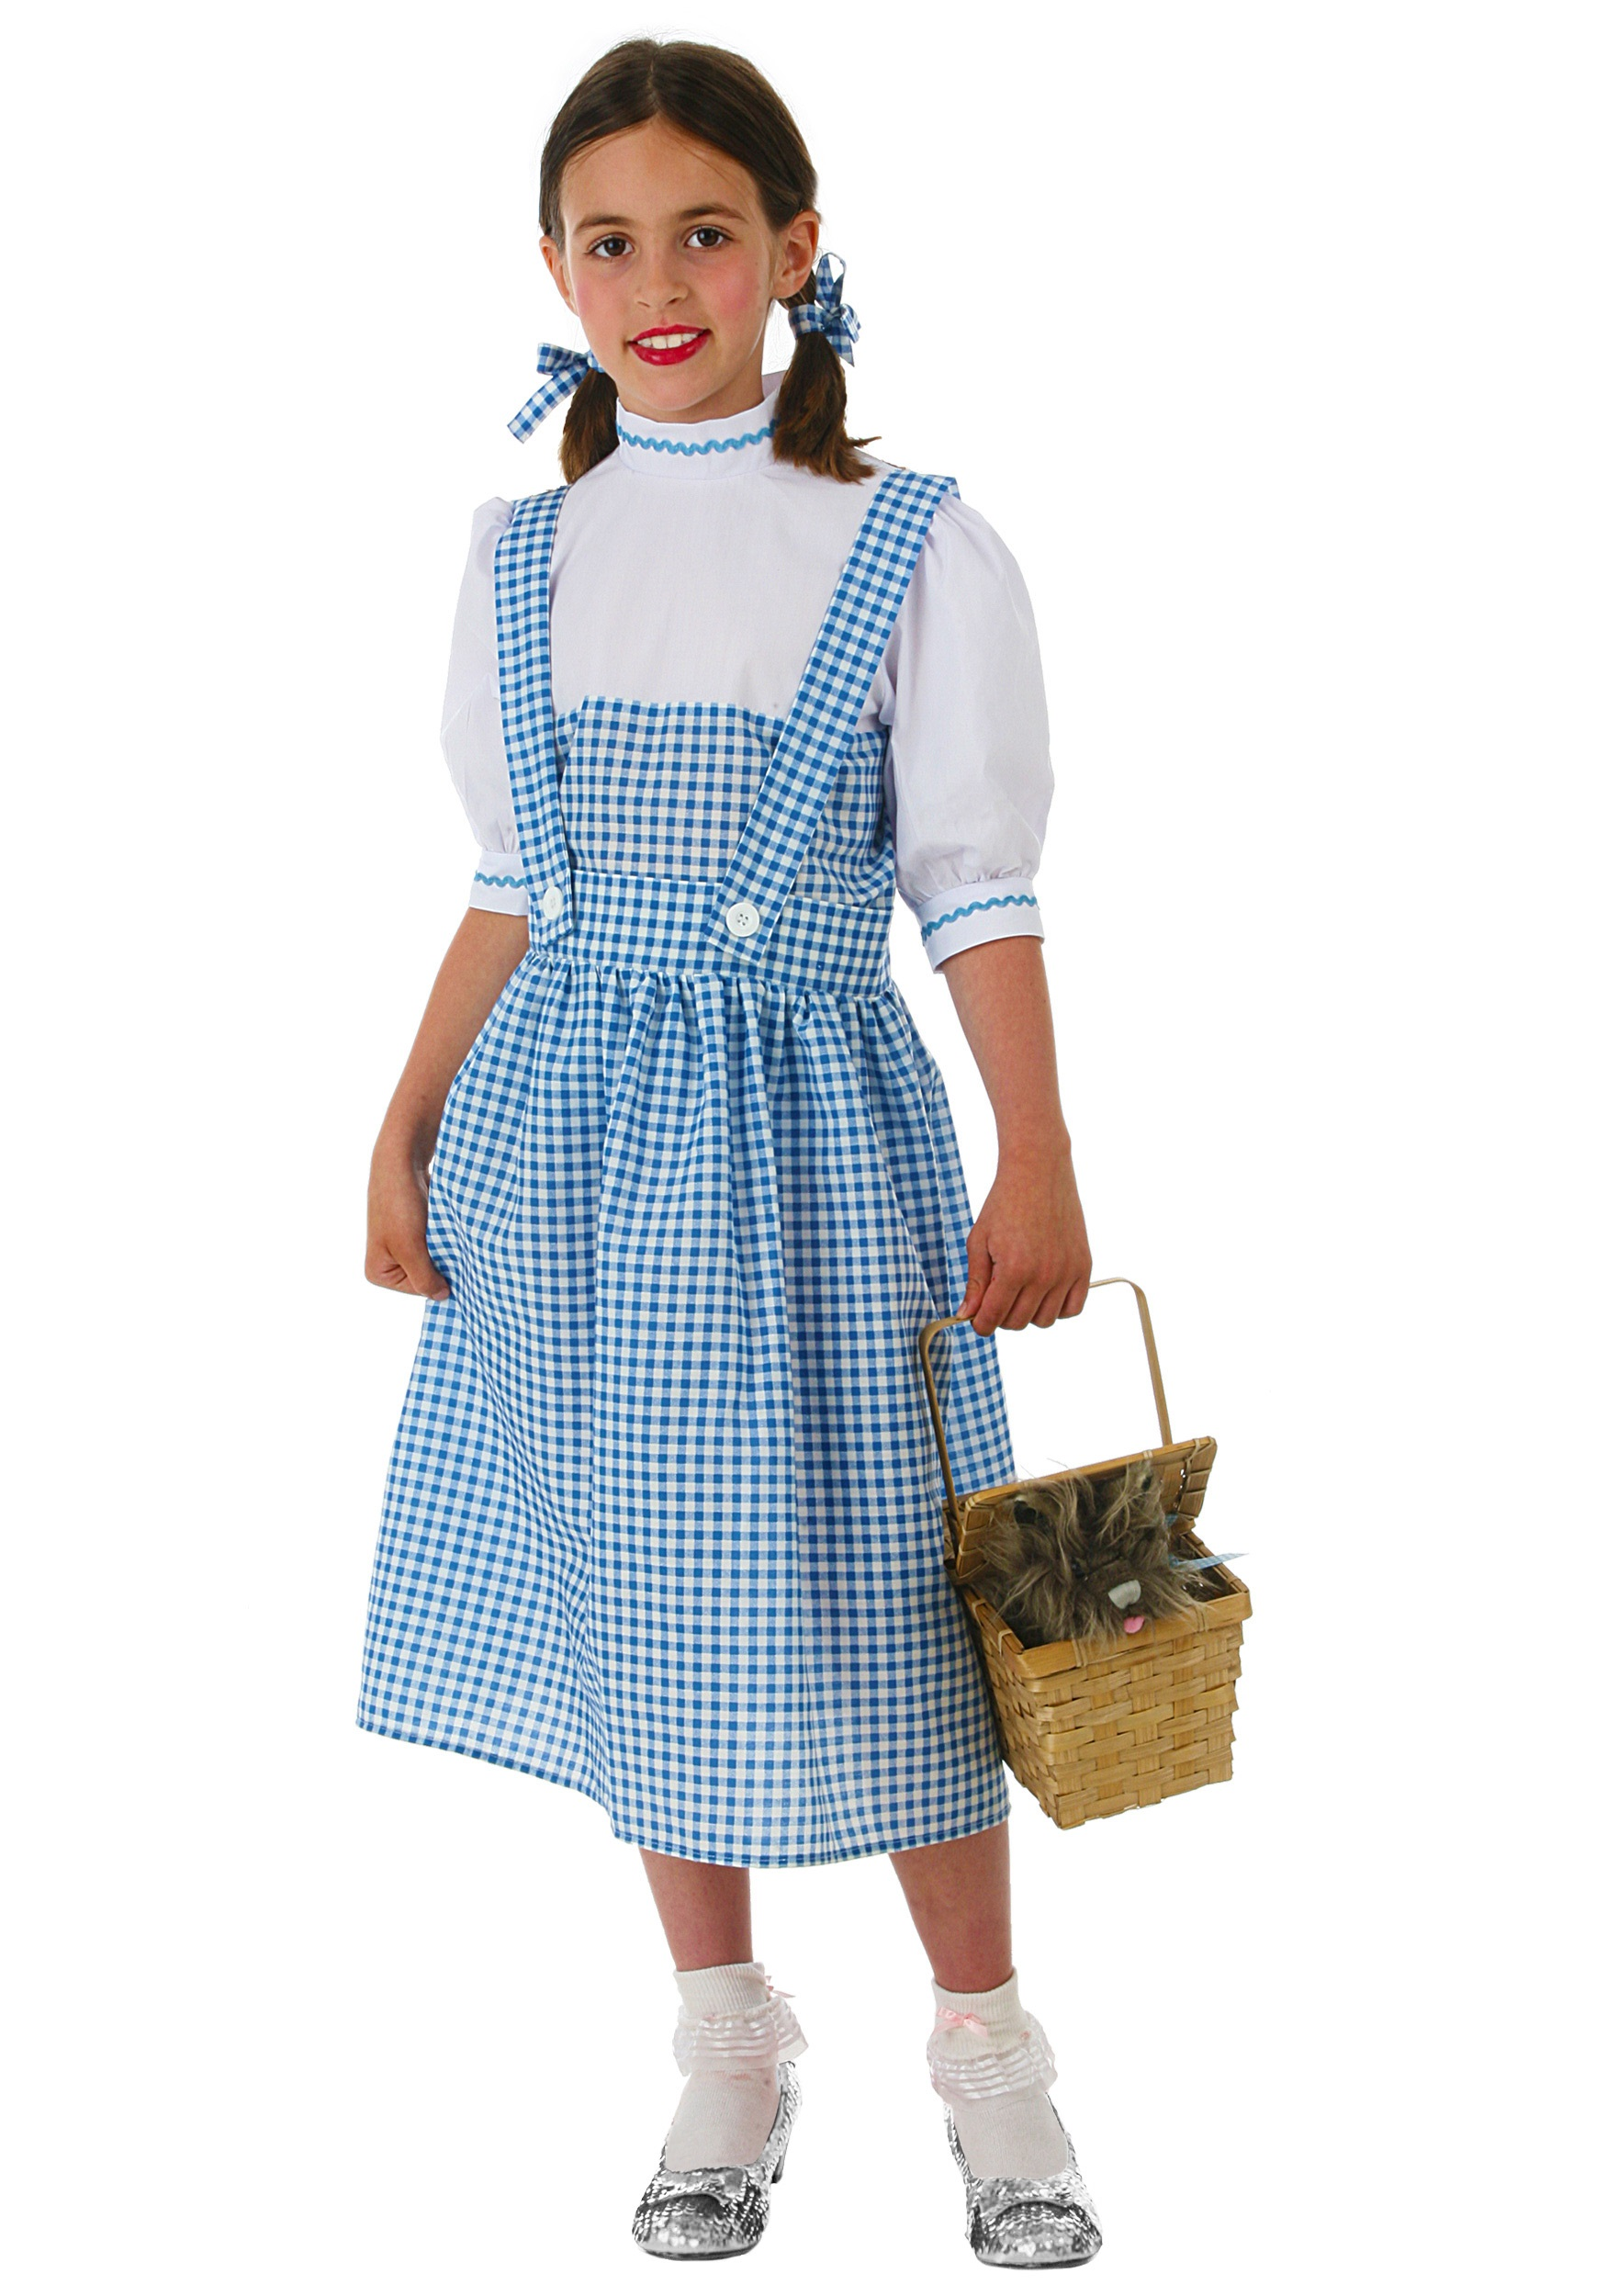 Child Kansas Girl Costume Dress